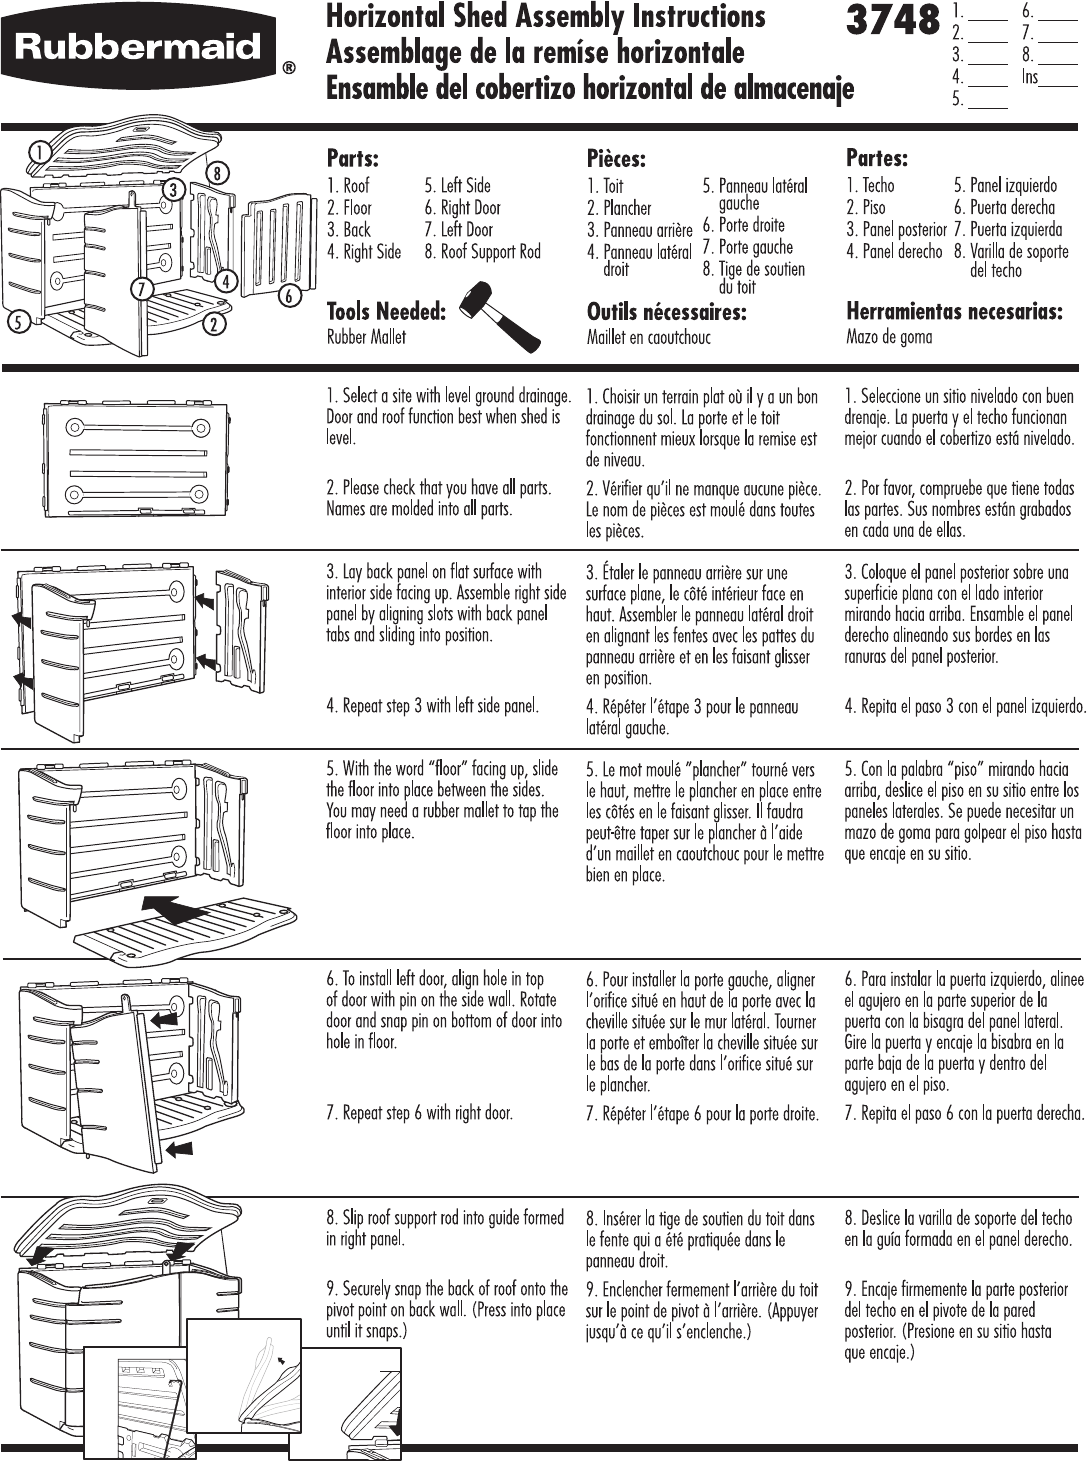 Assembly instructions for rubbermaid storage shed.